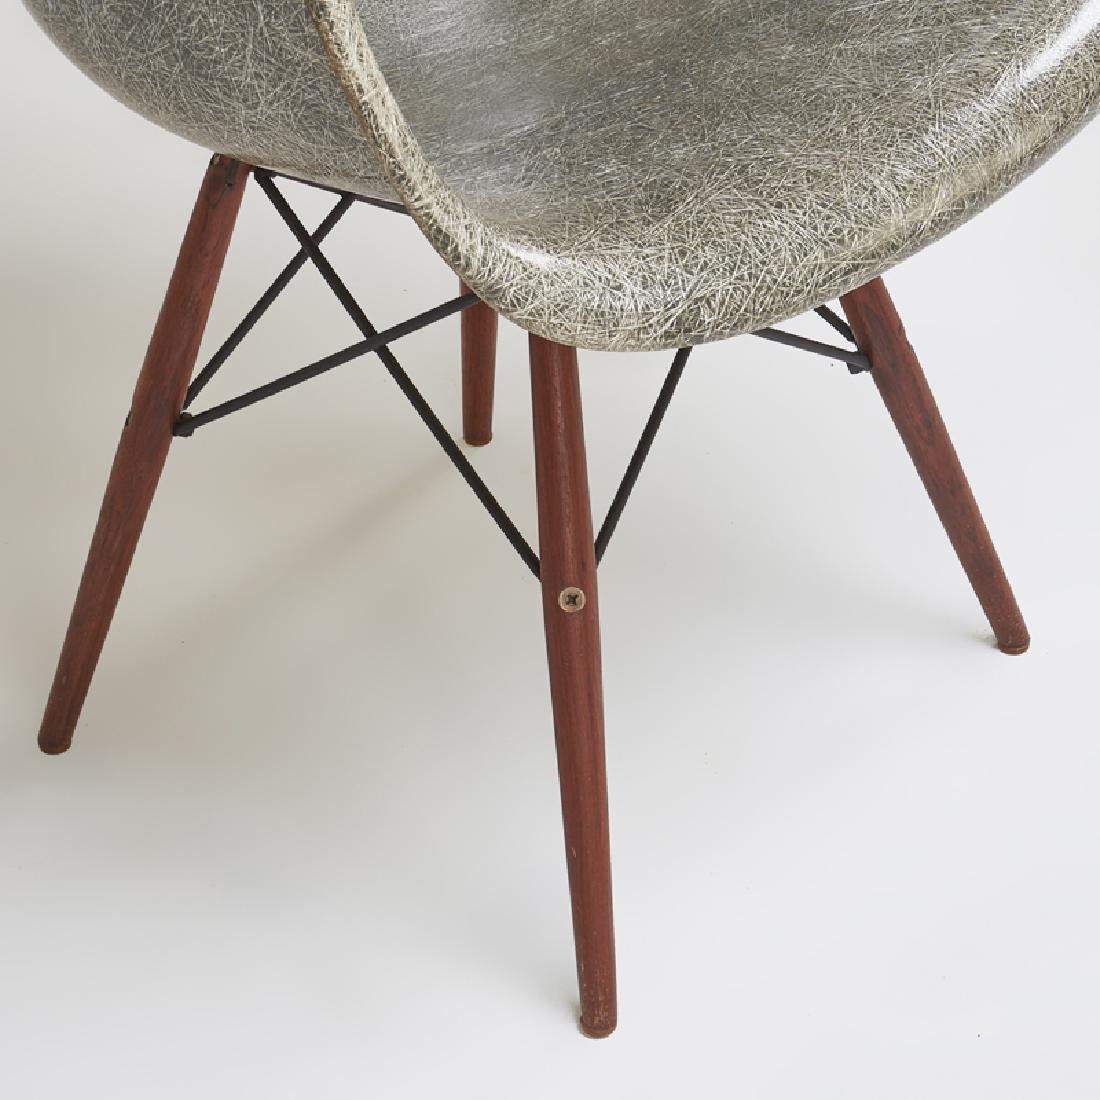 CHARLES & RAY EAMES; HERMAN MILLER/ZENITH Chair - 5